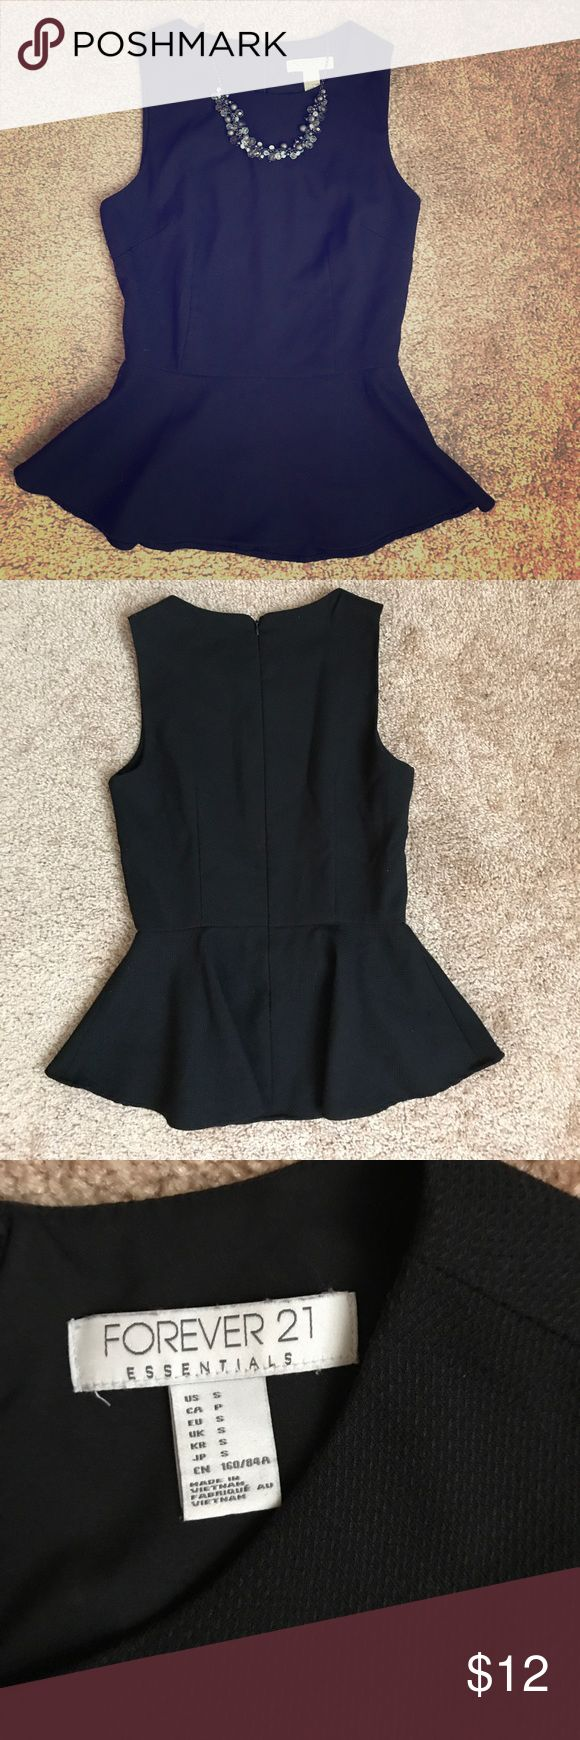 Forever 21 Black Peplum Top Black Peplum Top. Excellent used condition. Shell 64% Polyester 34% Rayon Lining 100% Polyester Forever 21 Tops